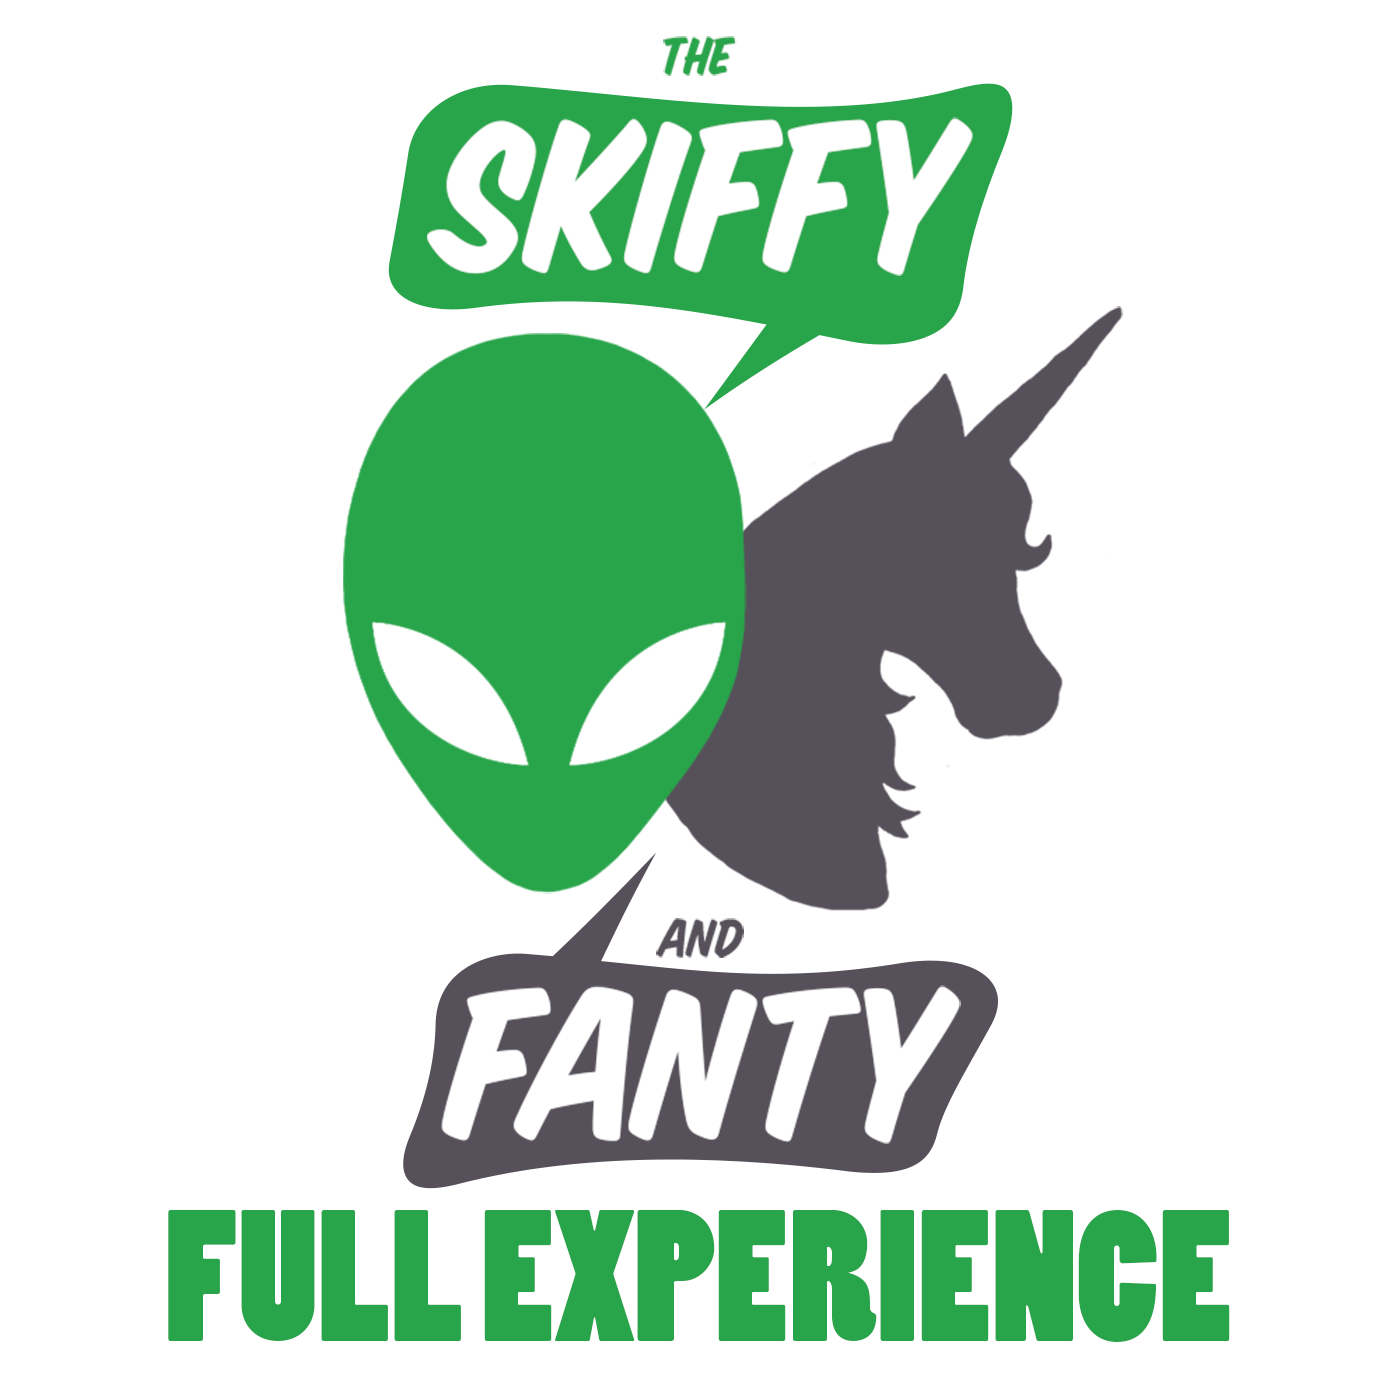 The Skiffy and Fanty Show Full Experience